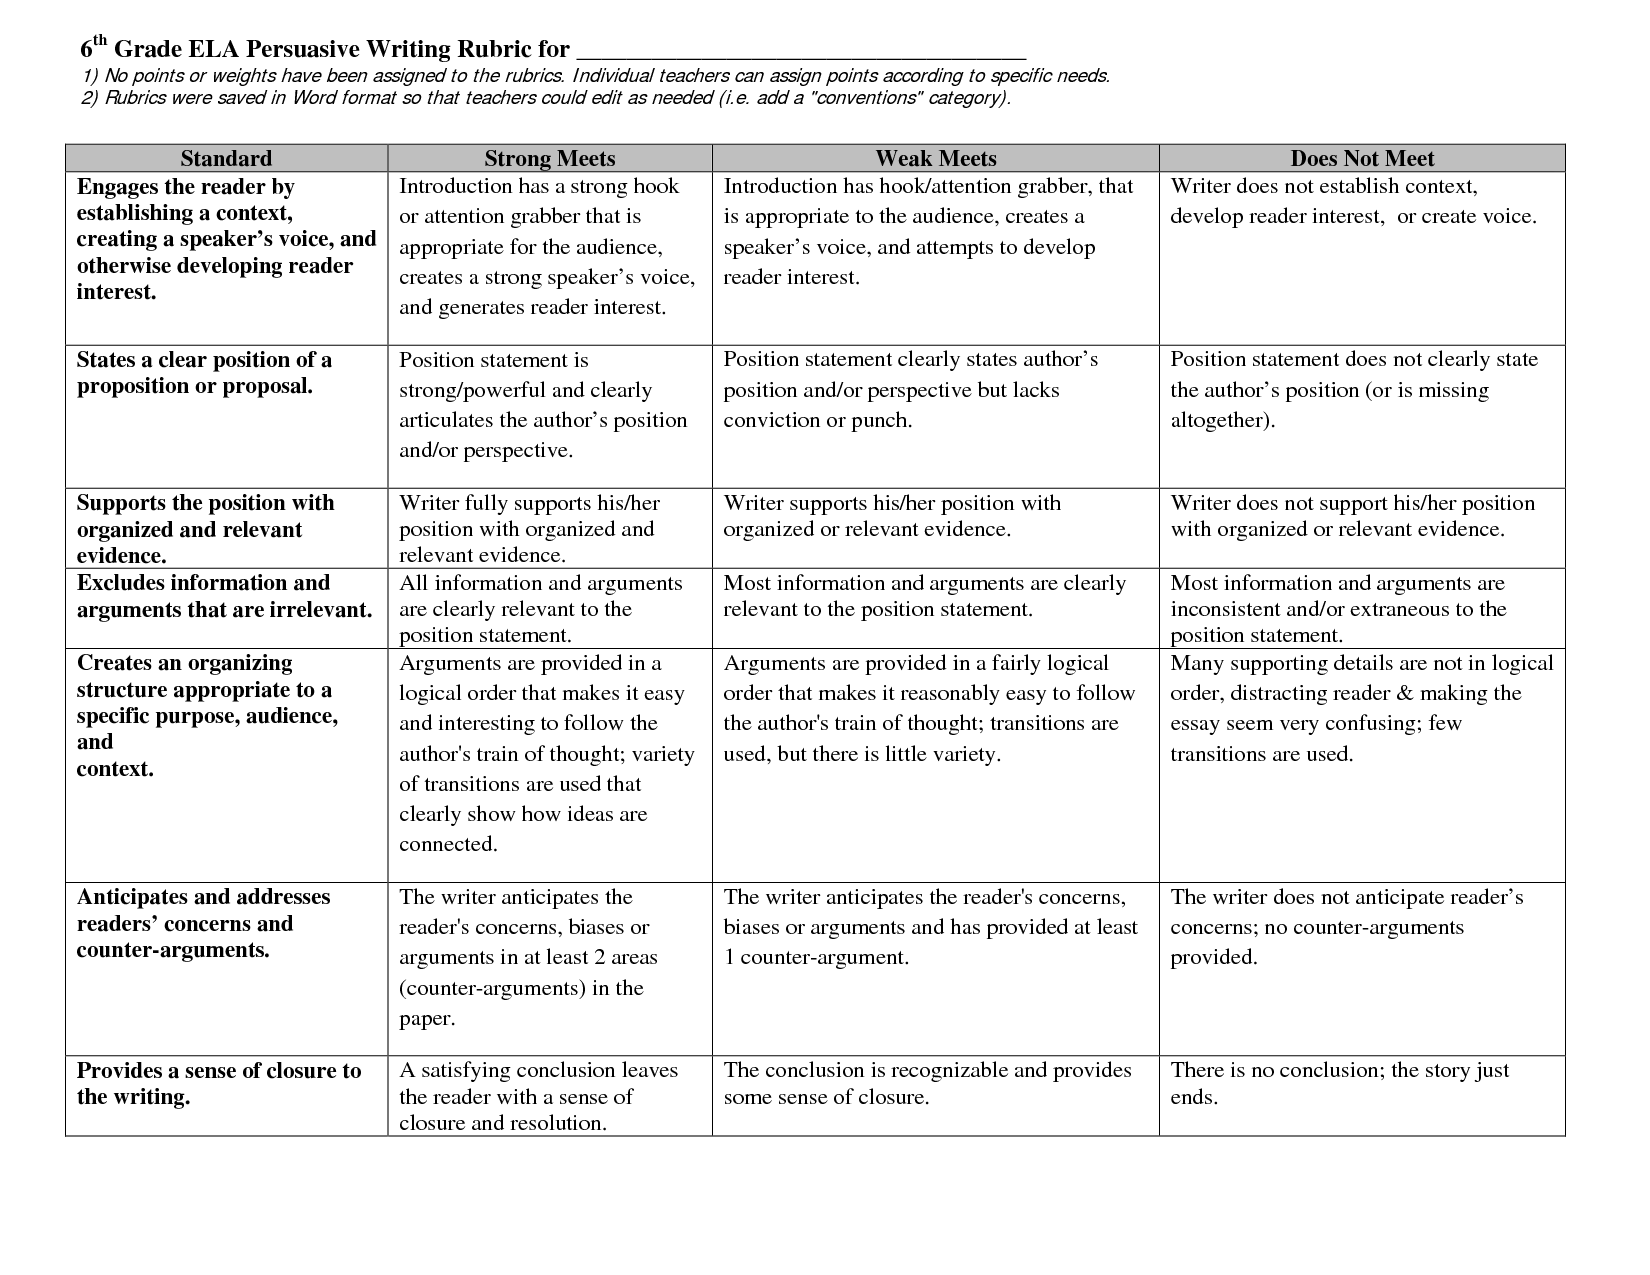 019 Example Of An Argumentative Essay On Persuasion Persuasive Worksheet Techniques How To Write 10th Grade 6th Writing Rubric 6 Stupendous Steps Middle School Outline Full